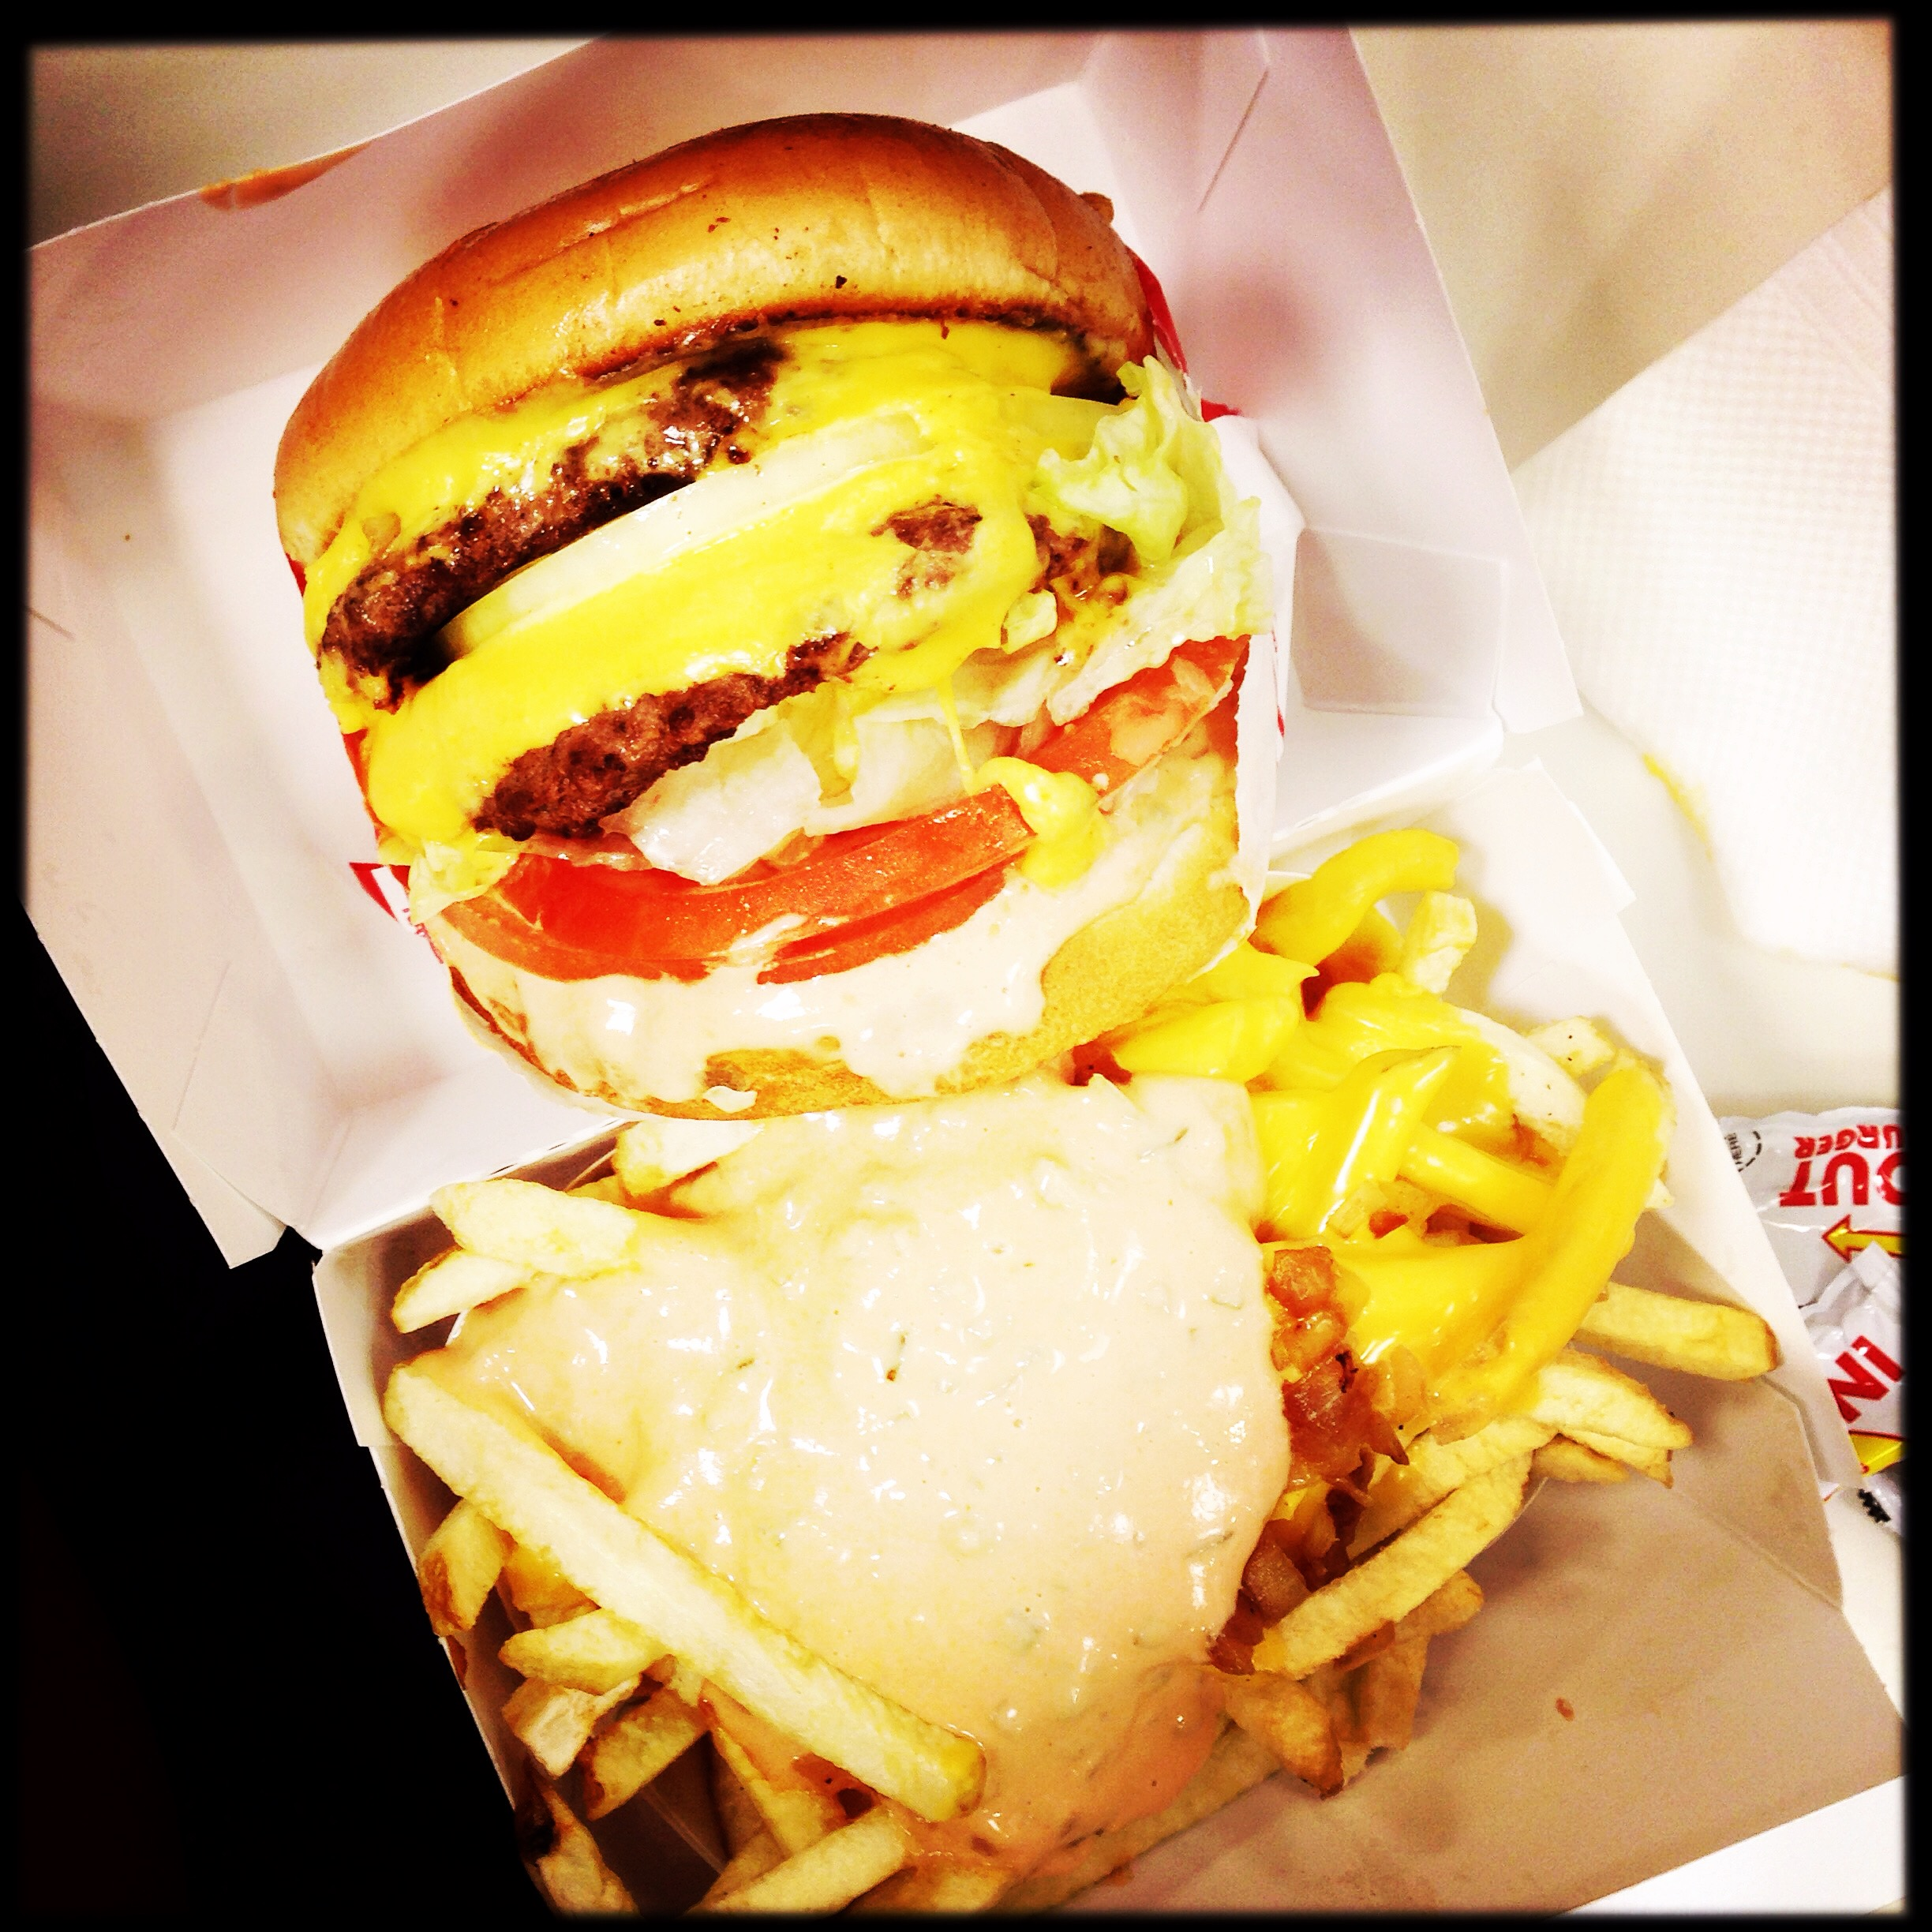 In & Out burger & fries